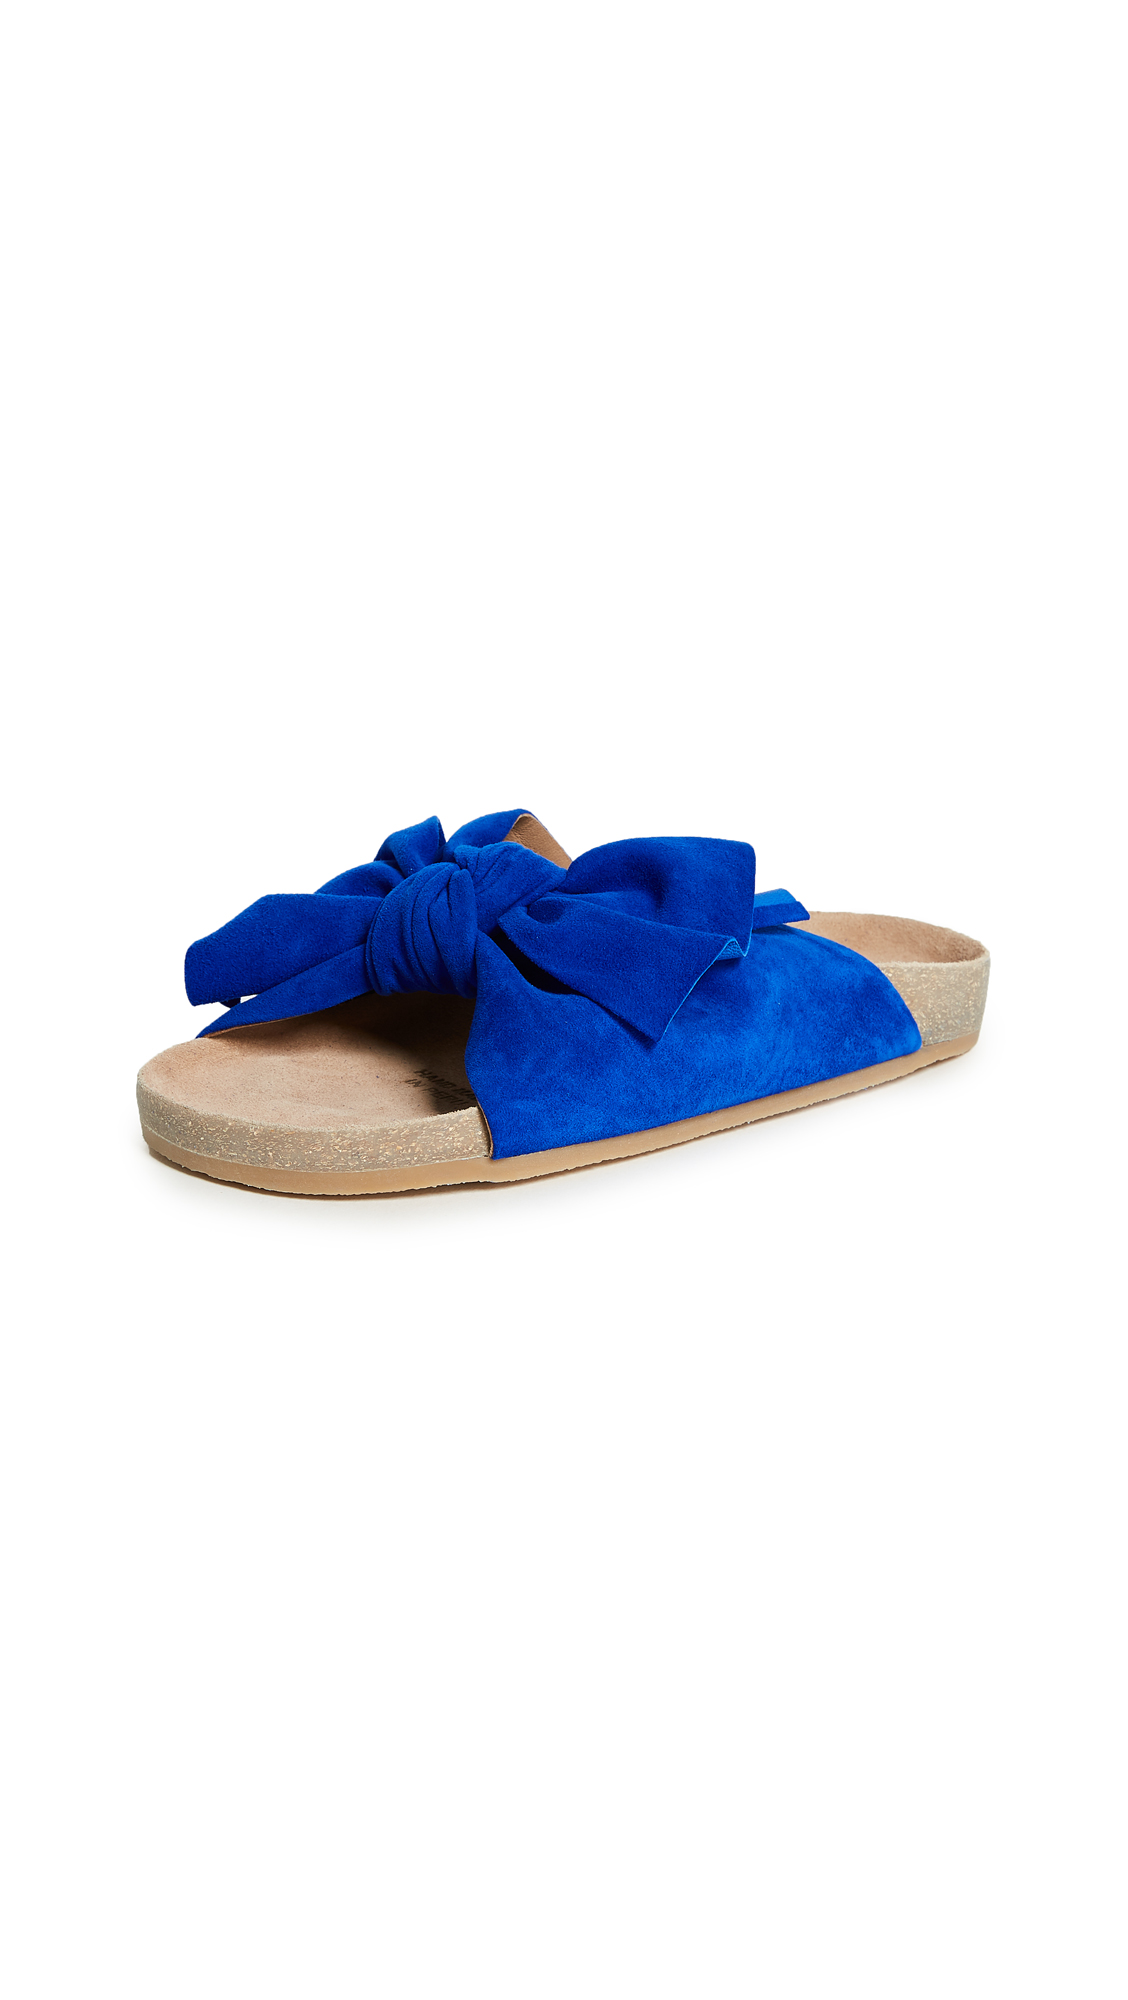 Ulla Johnson Ingrid Slides - Cobalt